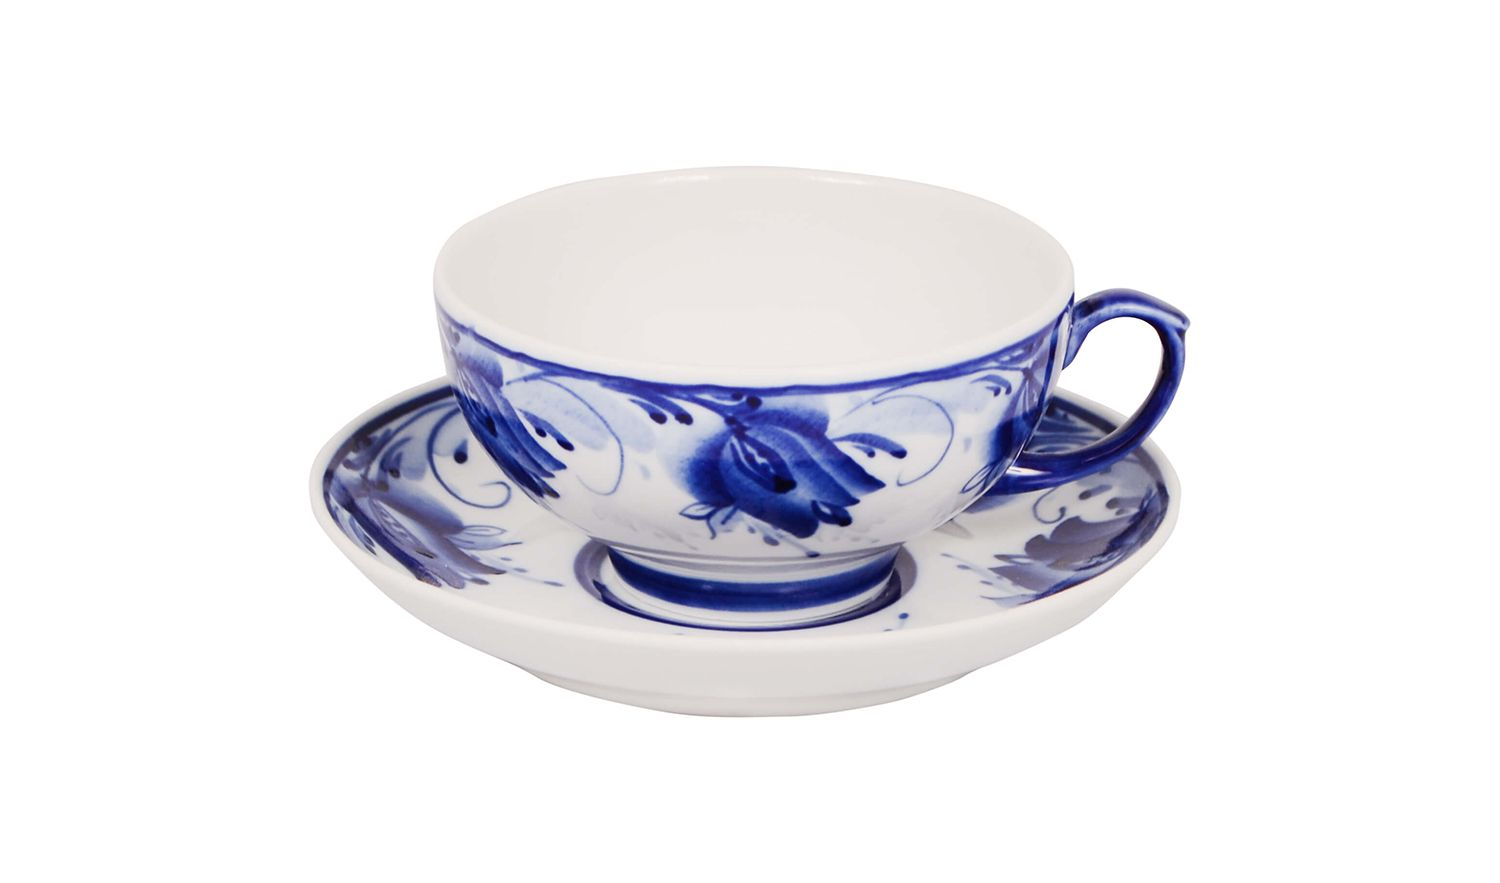 Dulevo porcelain / Tea cup and saucer set, 12 pcs., 220 ml Ruby Blue tulips